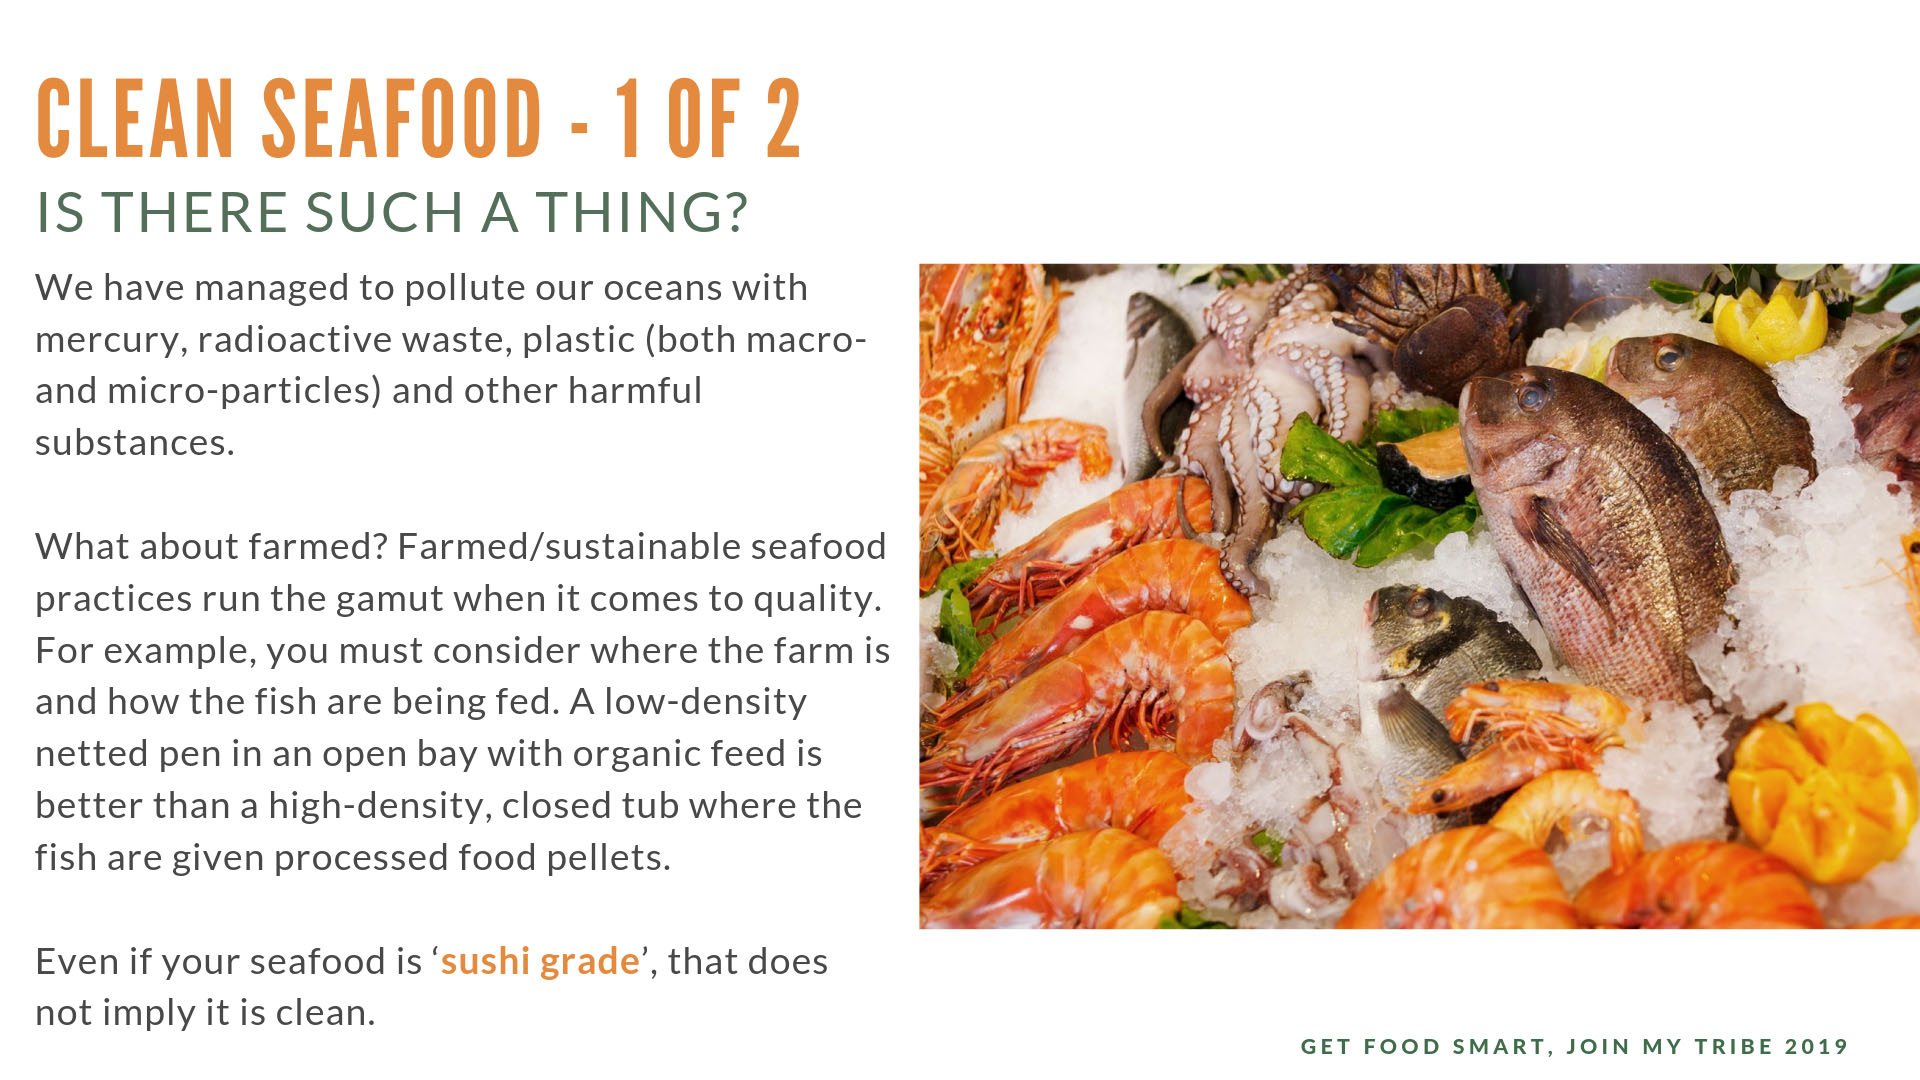 Is any seafood clean?